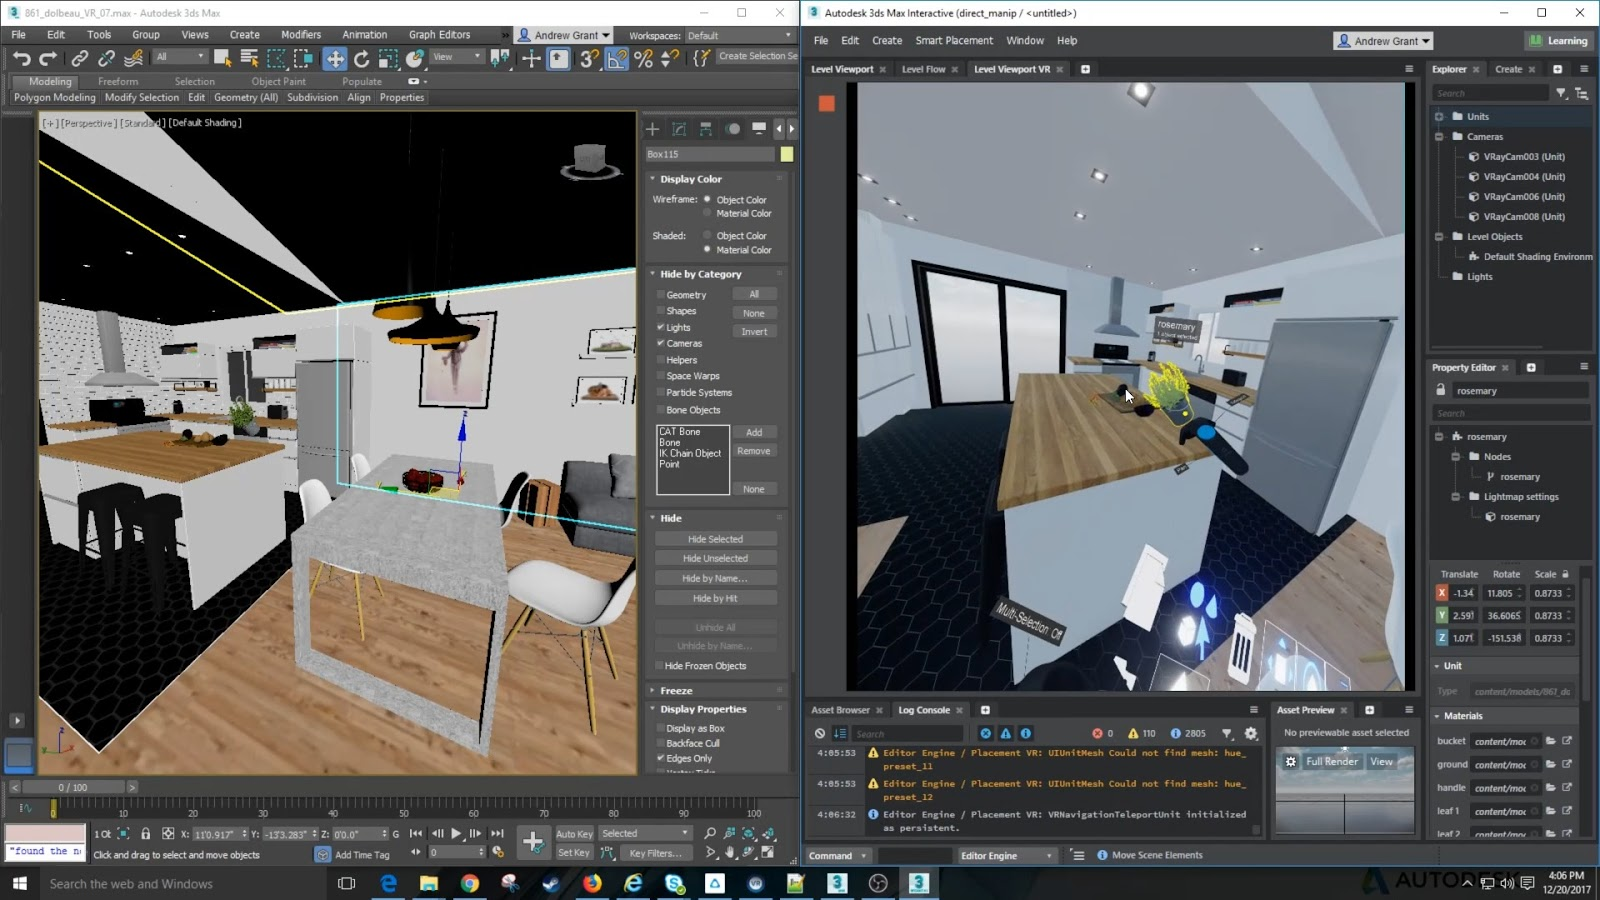 Autodesk 3ds Max 2019 | Computer Graphics Daily News